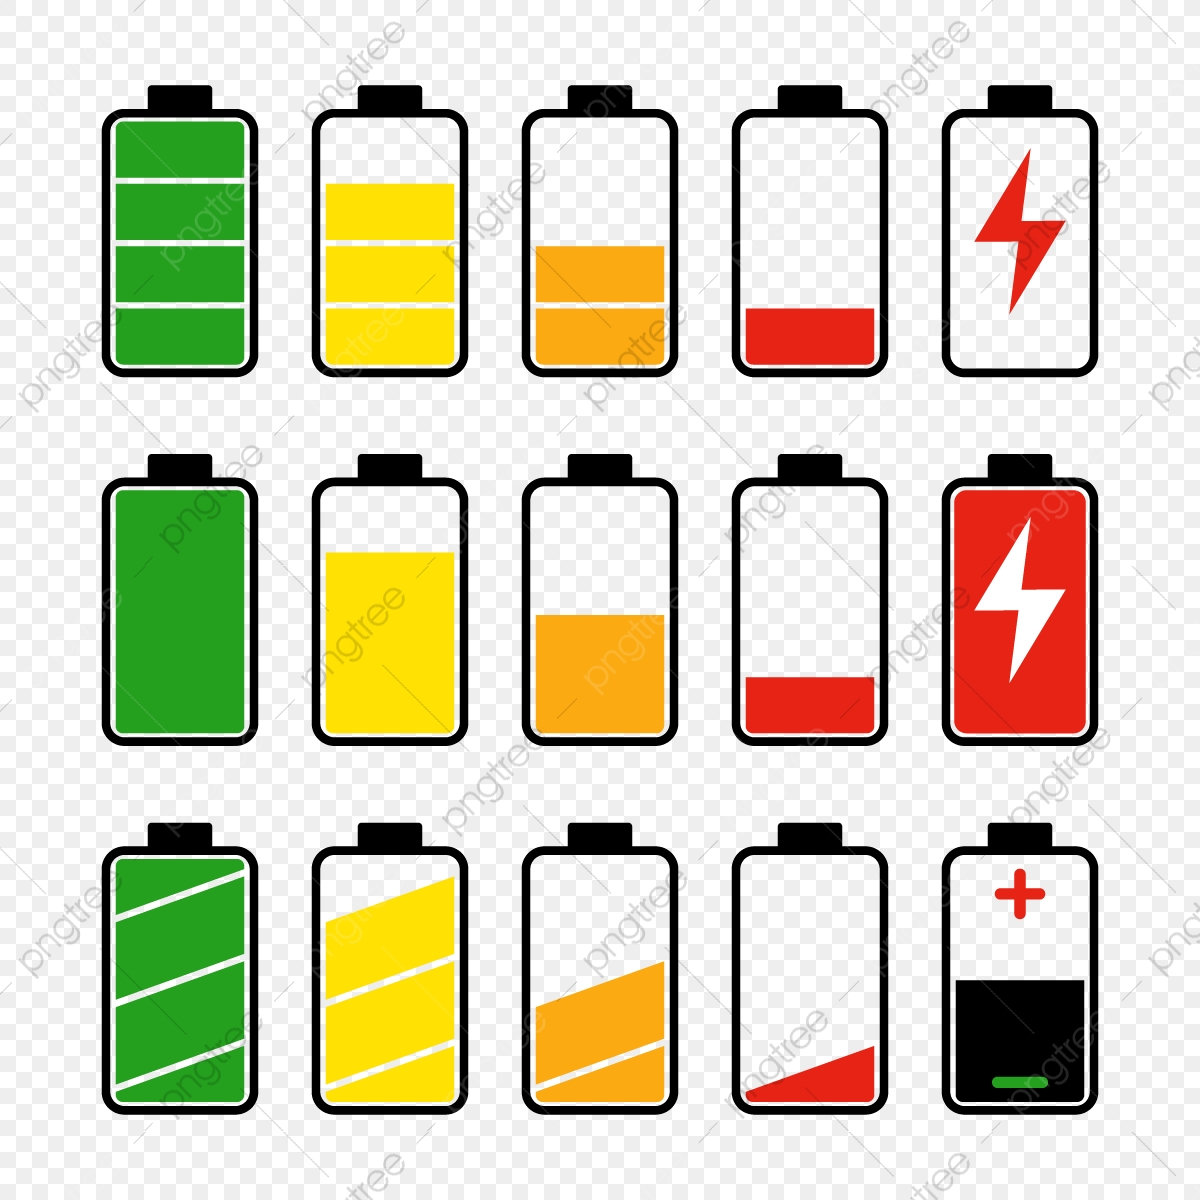 Battery Png Images Vector And Psd Files Free Download On Pngtree